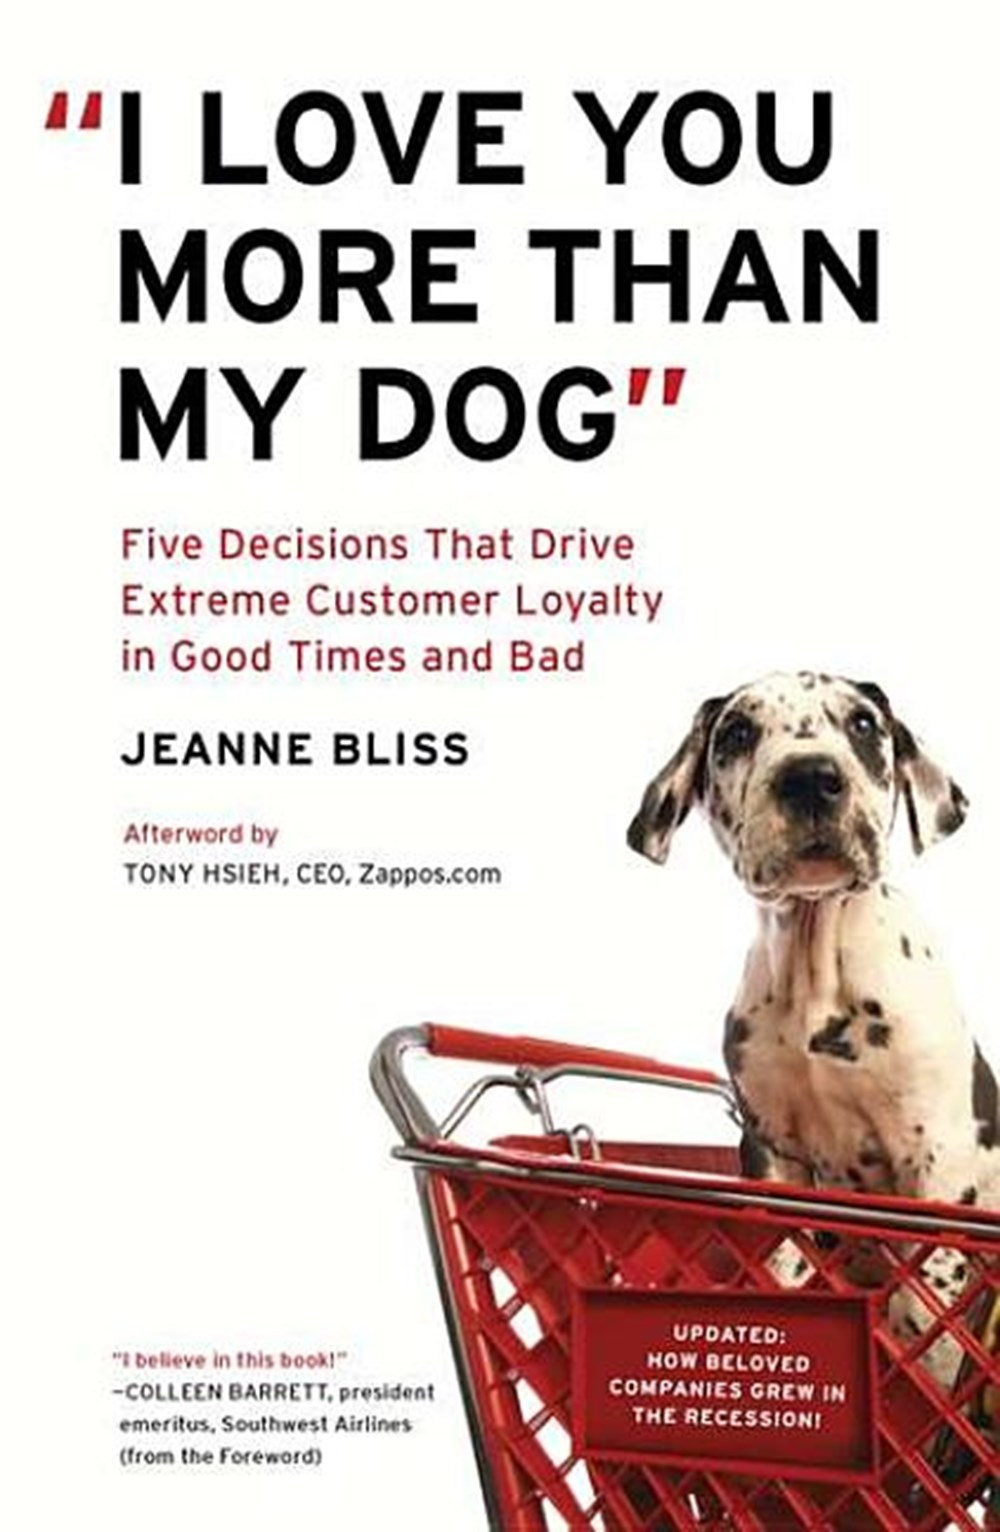 I Love You More Than My Dog Five Decisions That Drive Extreme Customer Loyalty in Good Times and Bad